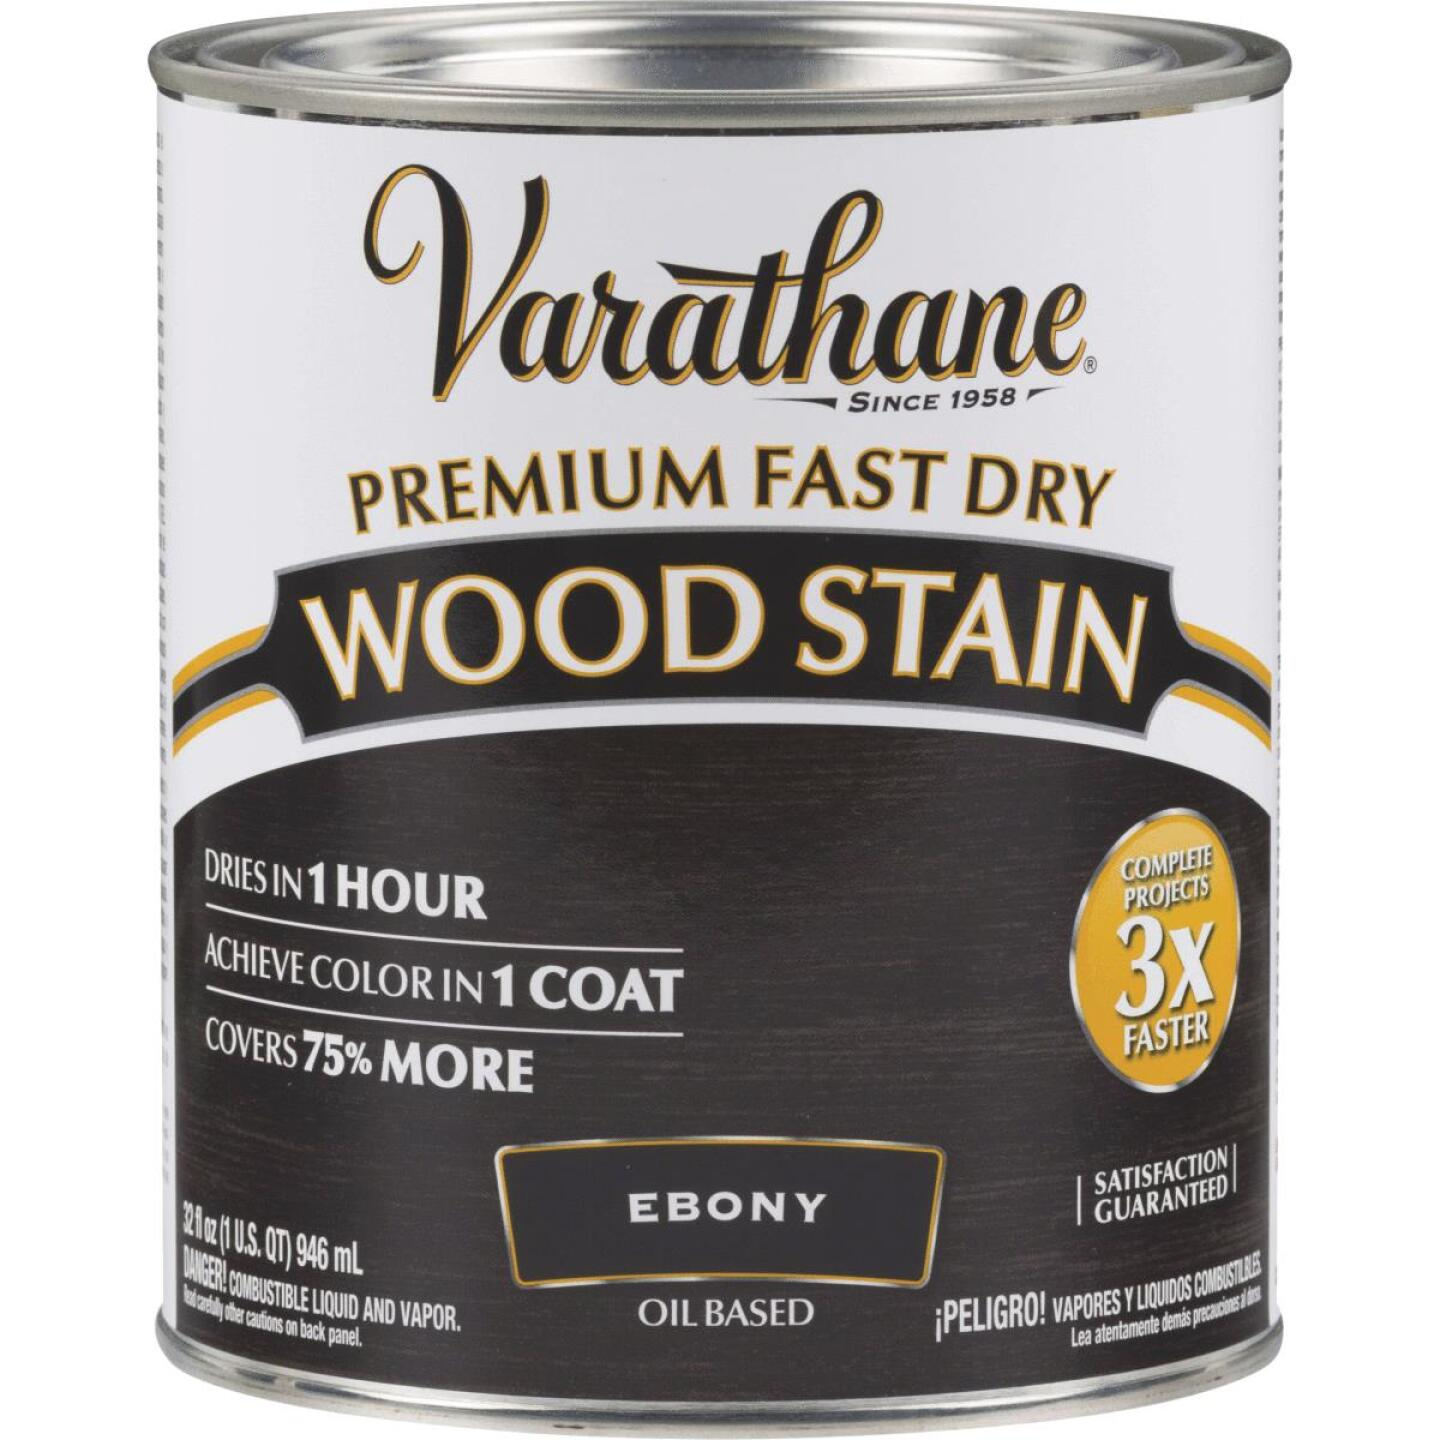 Varathane Fast Dry Ebony Wood Urethane Modified Alkyd Interior Wood Stain, 1 Qt. Image 1